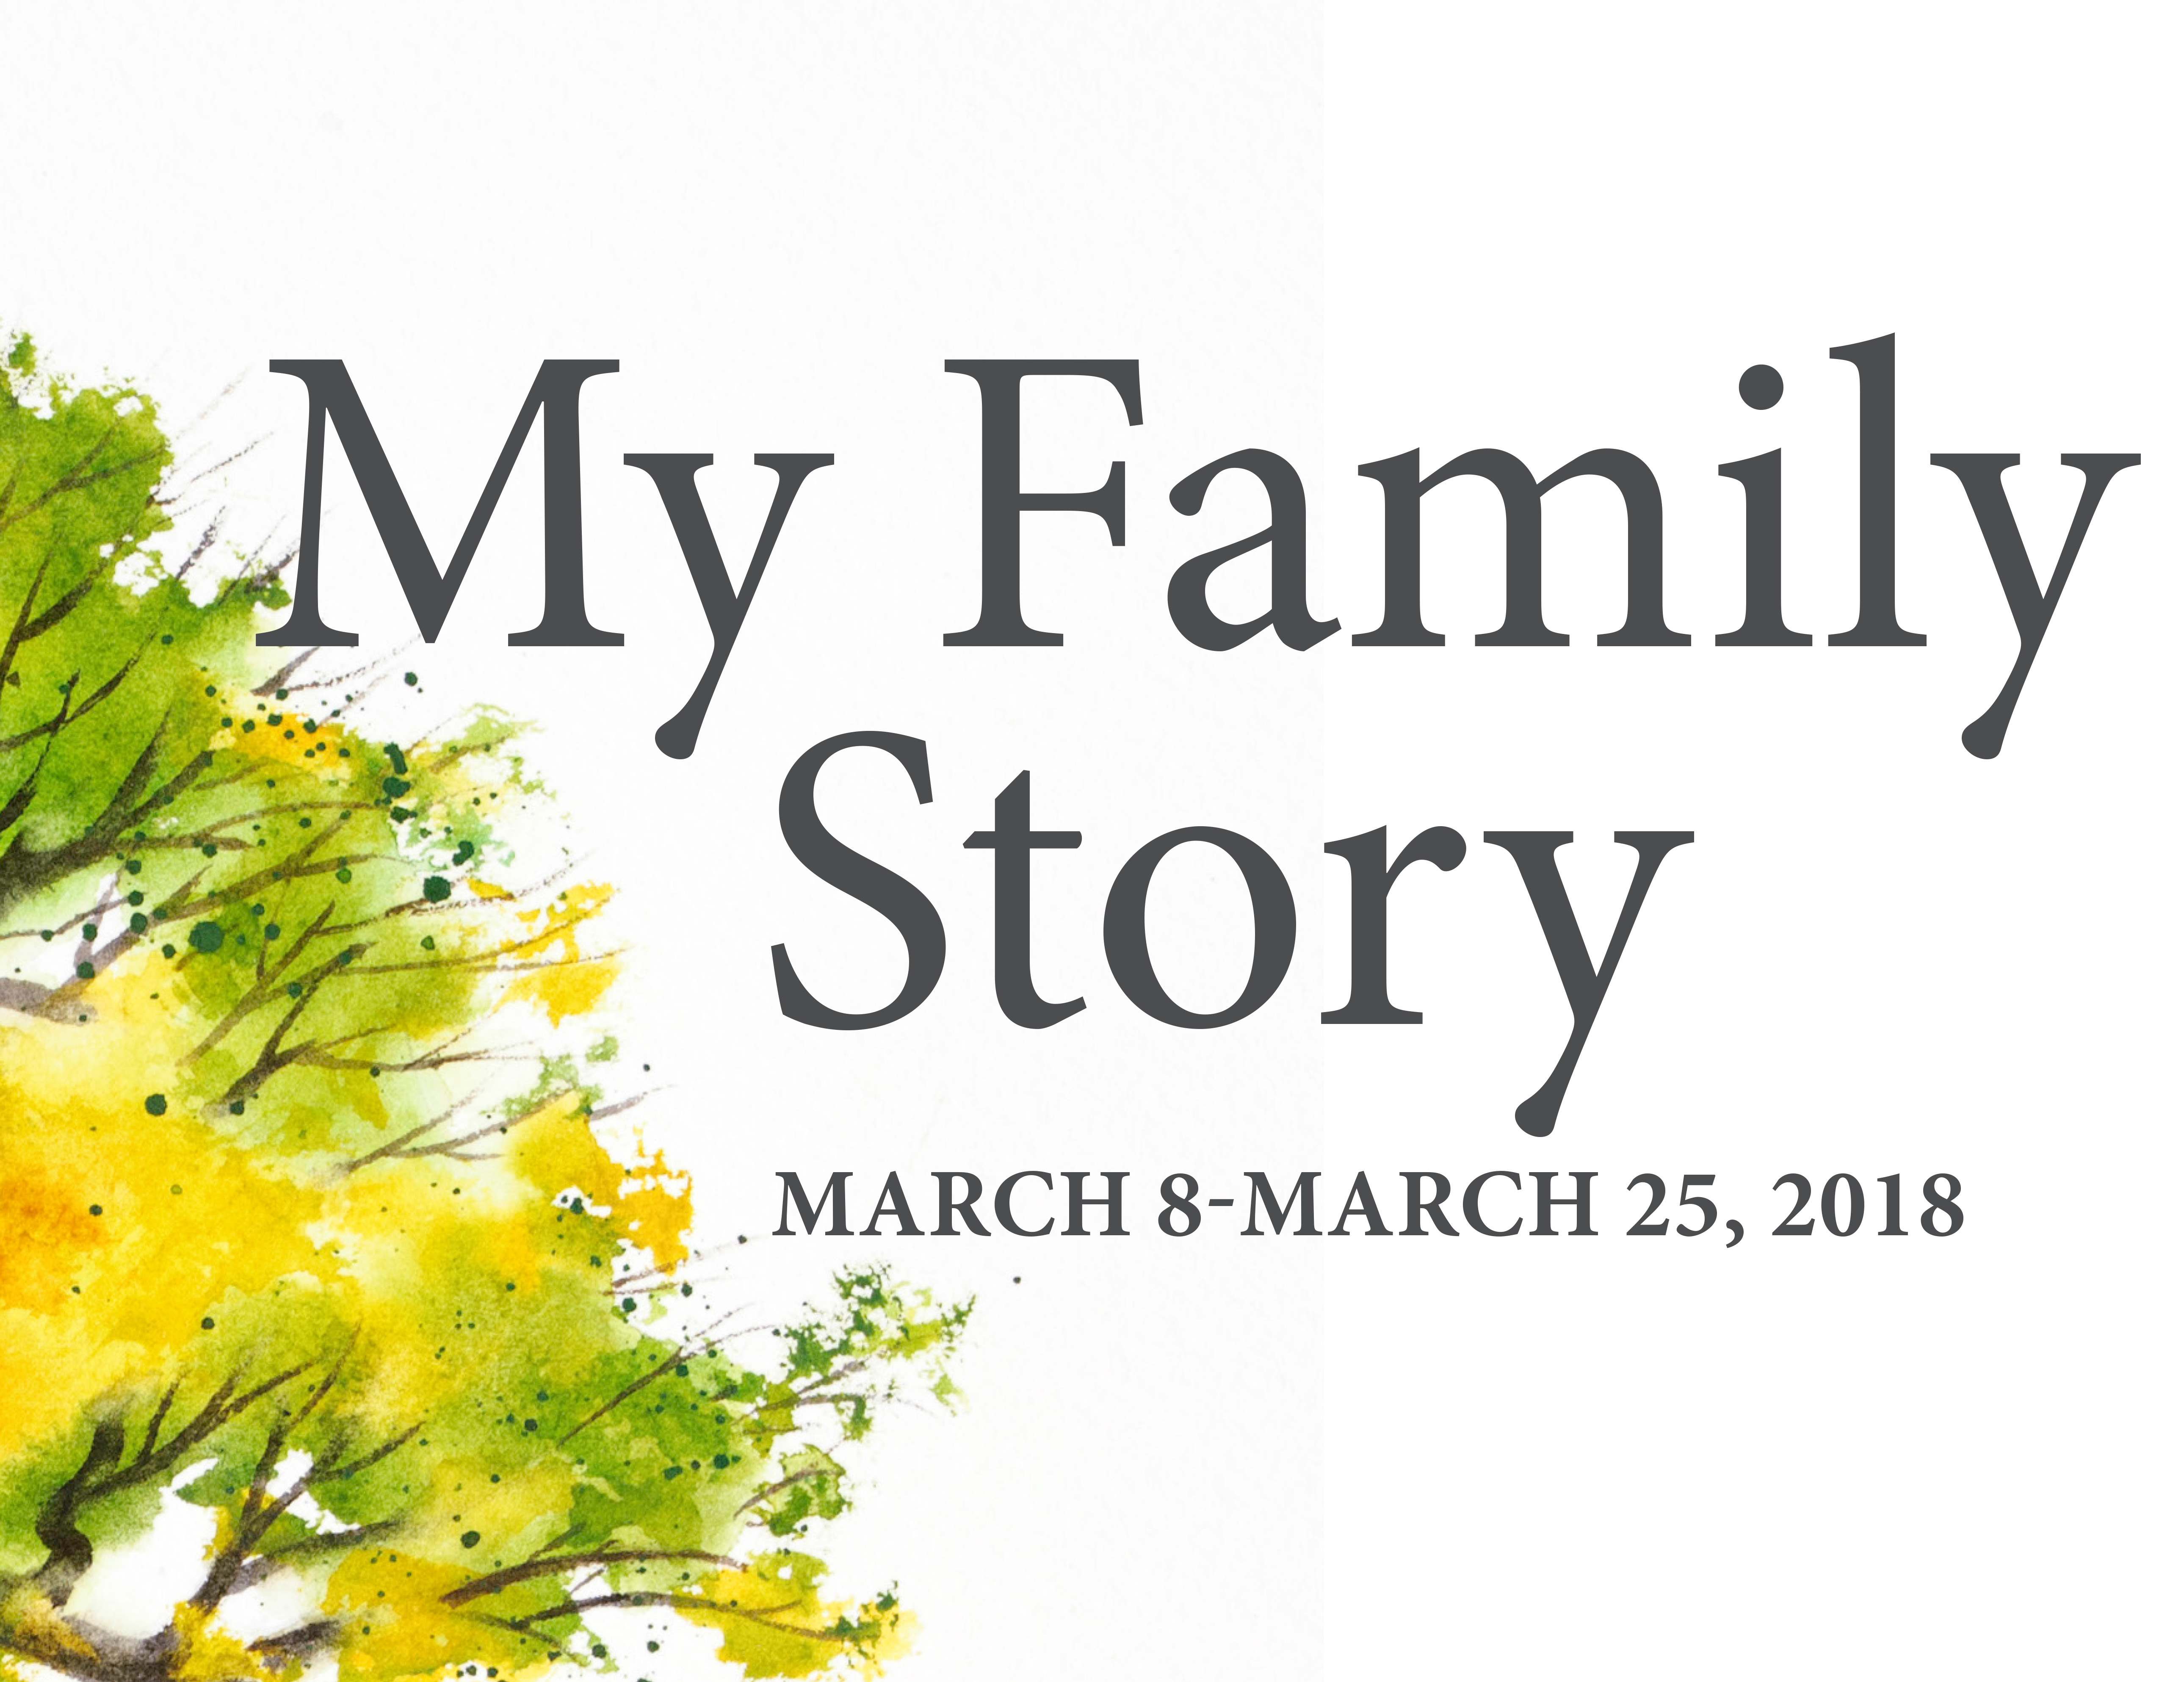 Judging my family story